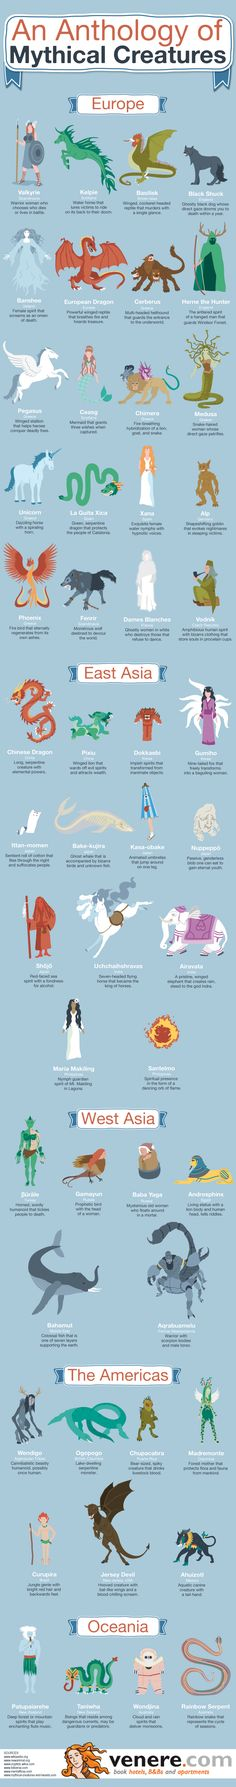 Seres mitológicos de todo el mundo.  Here's a Handy Little Guide to the World's Mythical Creatures